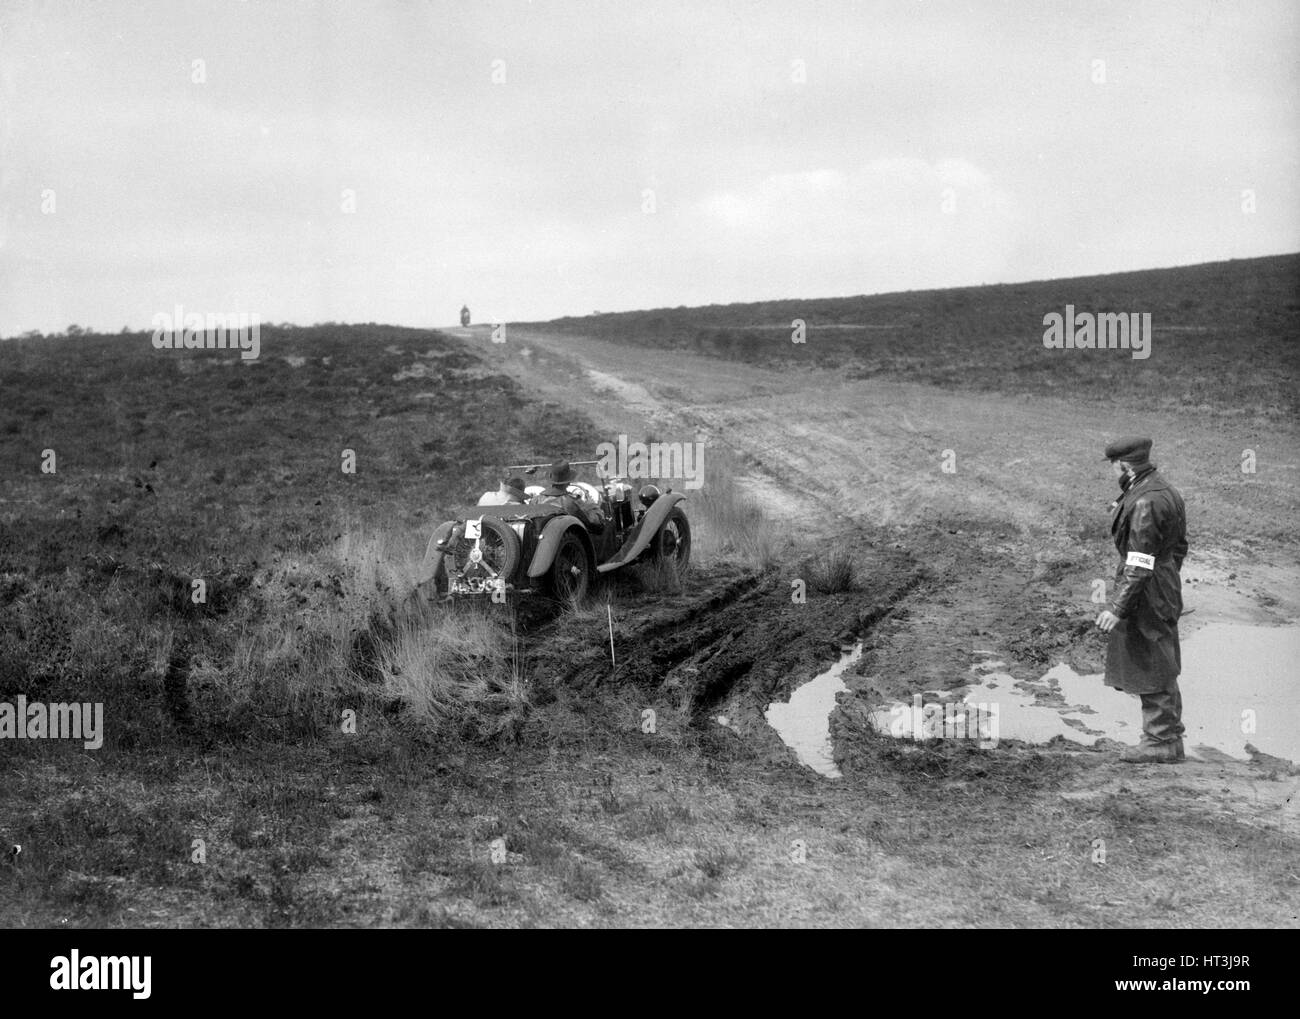 Swept-wing MG J2 competing in a motoring trial, Bagshot Heath, Surrey, 1930s. Artist: Bill Brunell. - Stock Image